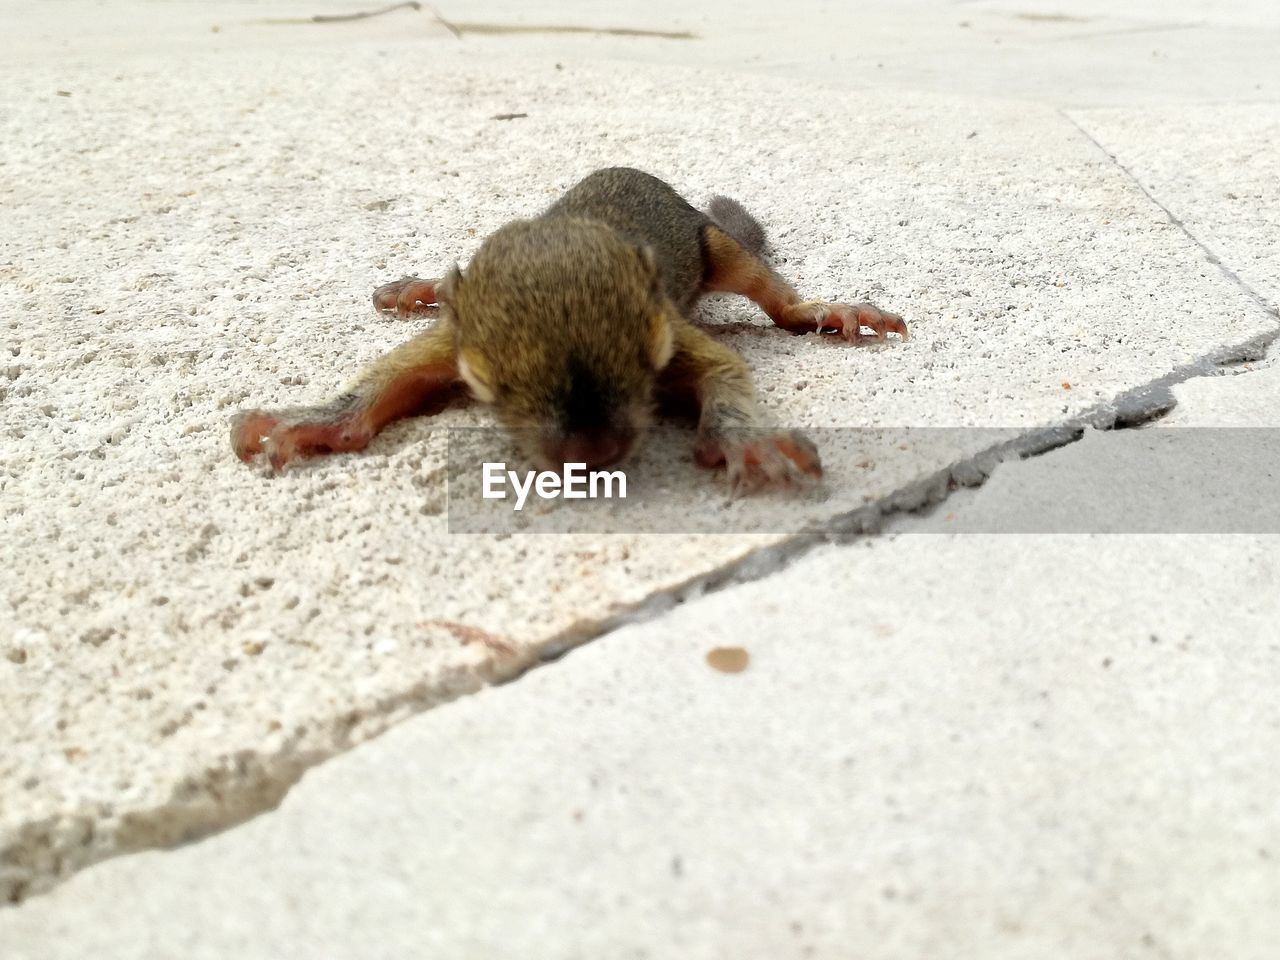 one animal, animal themes, animals in the wild, outdoors, day, squirrel, mammal, full length, nature, no people, close-up